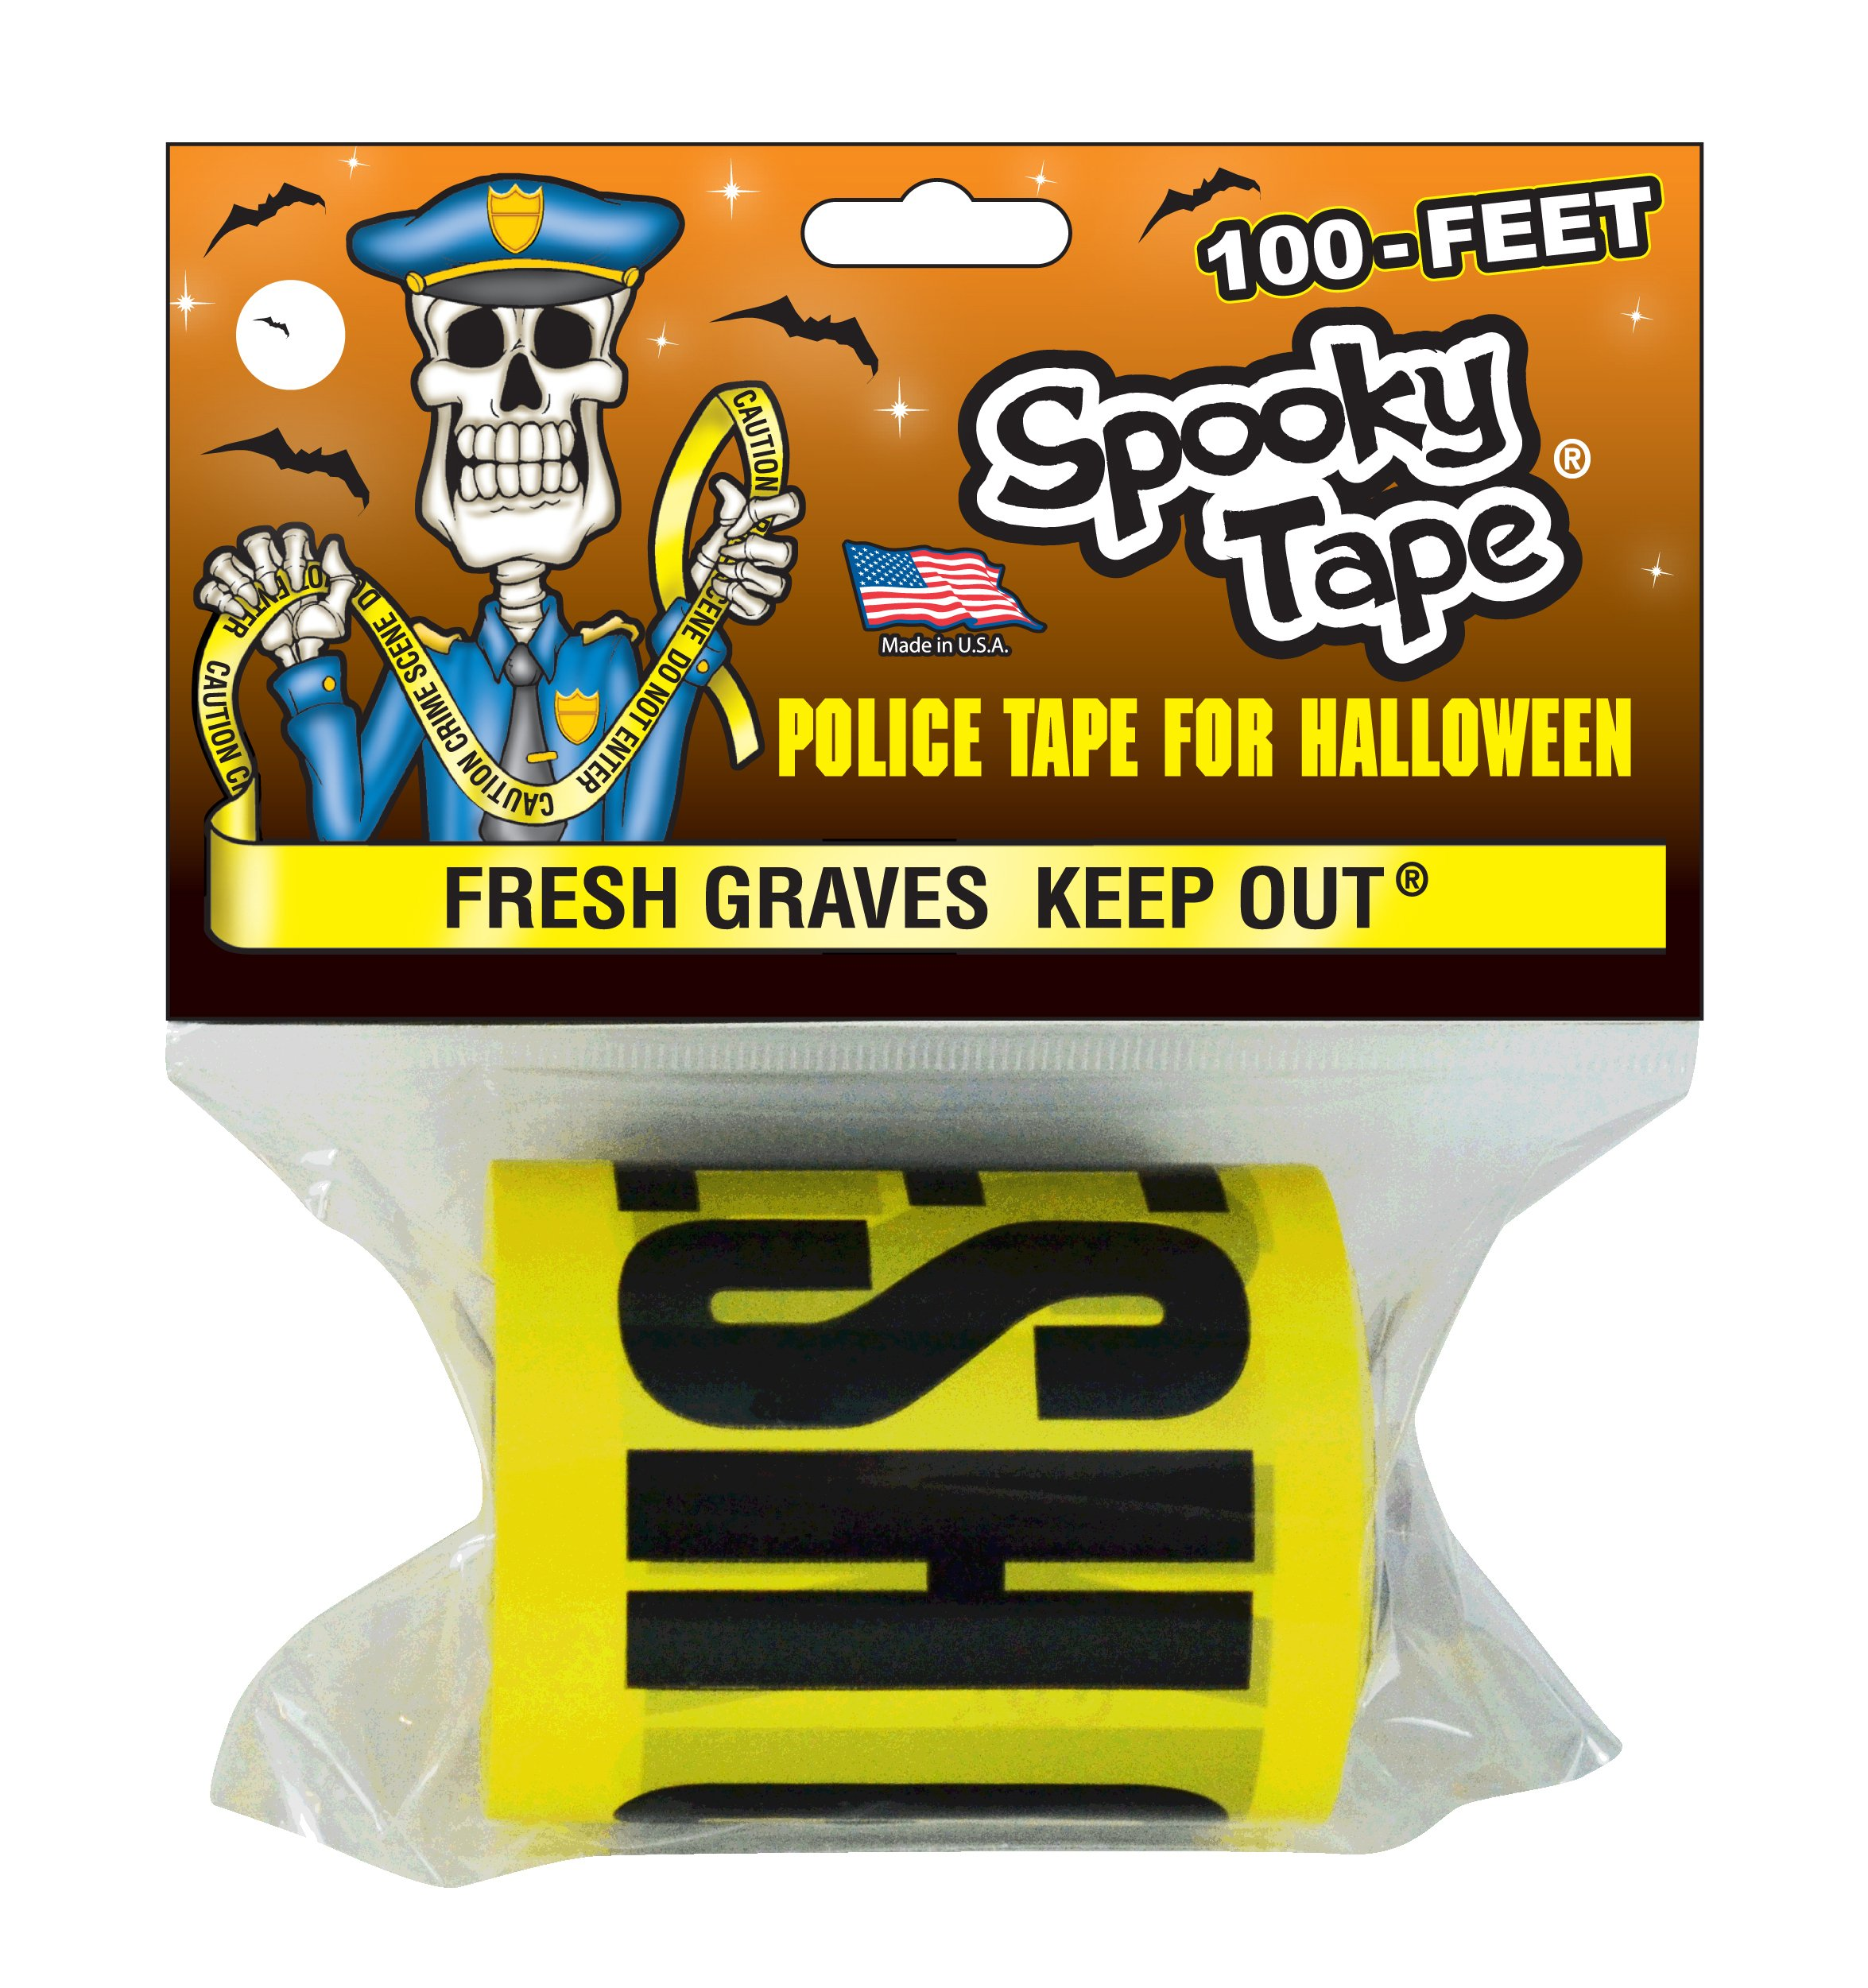 Spooky Tape - FRESH GRAVES KEEP OUT - 100 Feet!